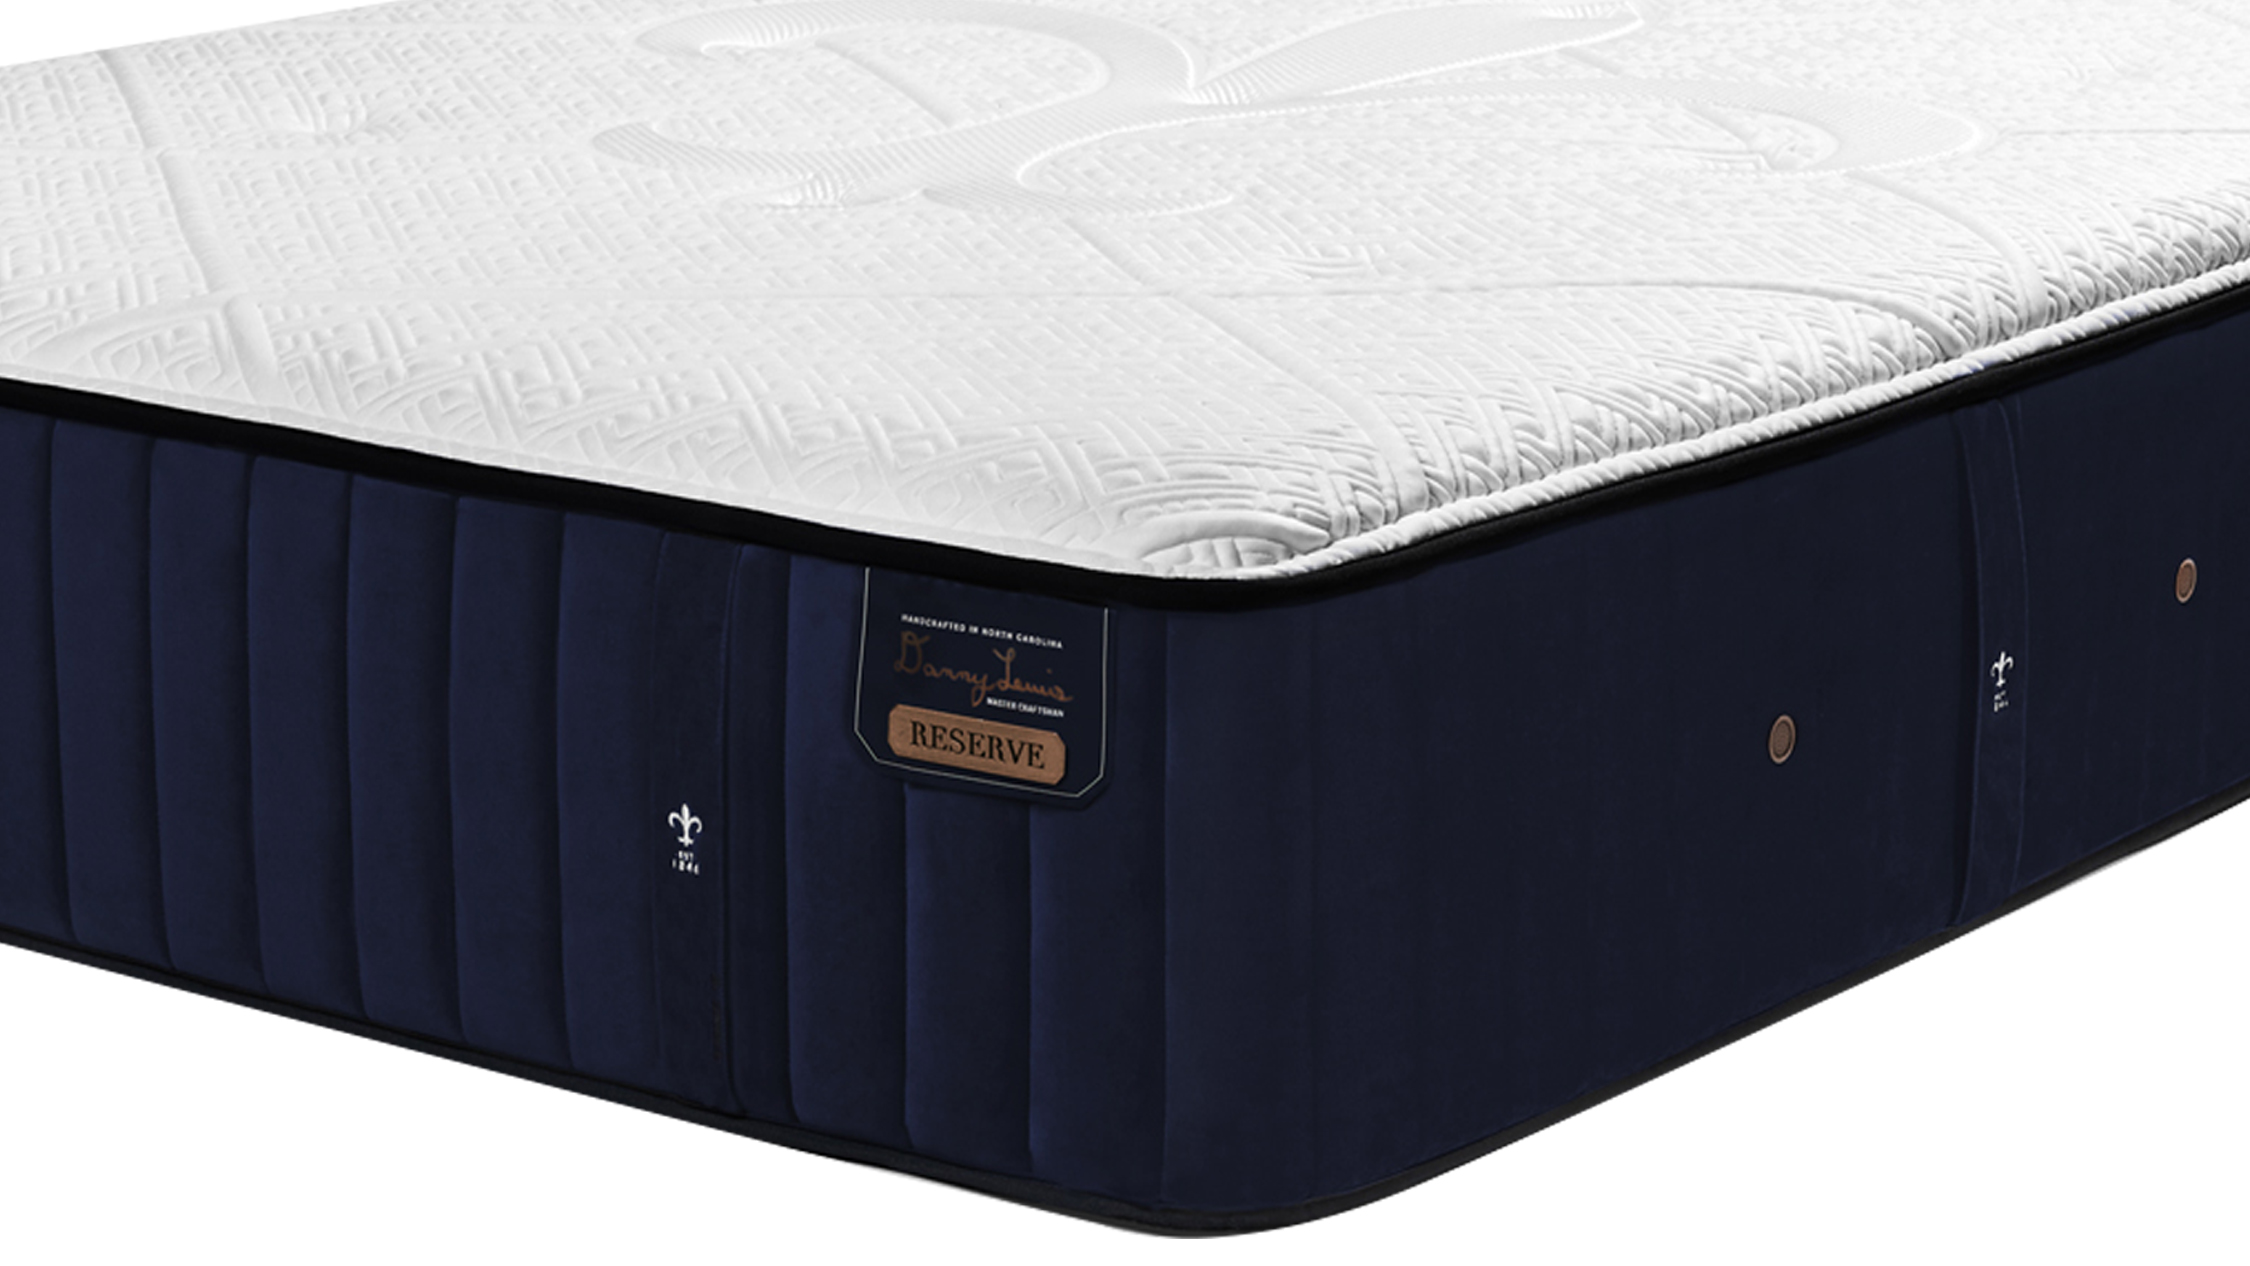 Queen Size S&F HEPBURN LUX FIRM RESERVE Mattress, , hi-res